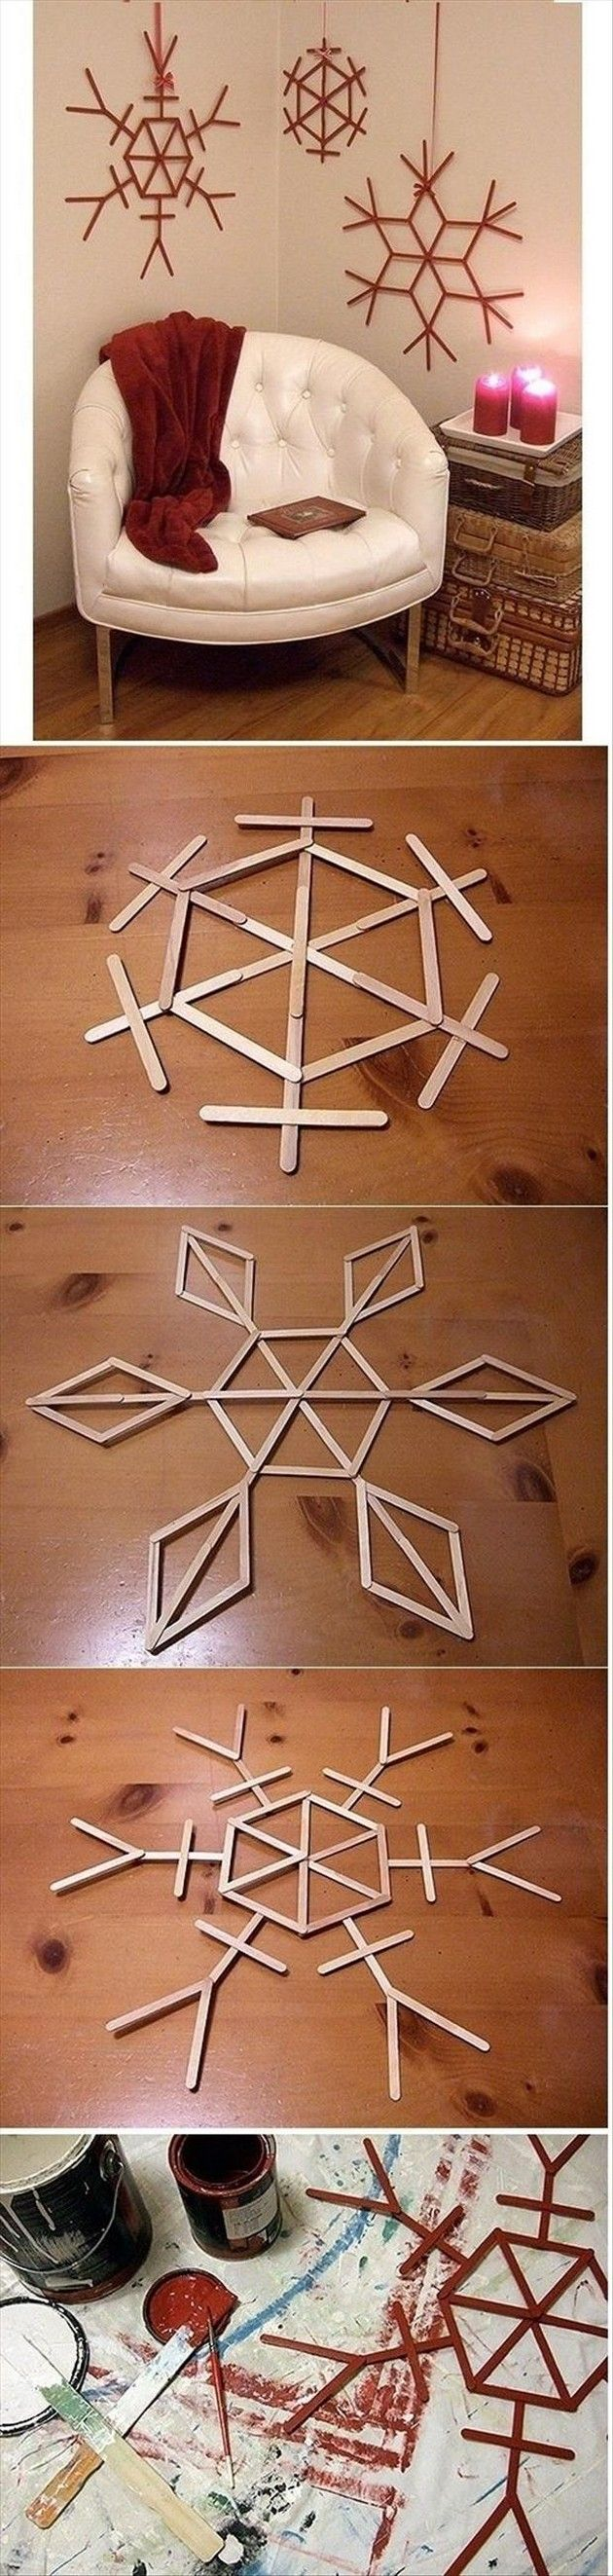 Craft Art and DIY Ideas - snowflakes